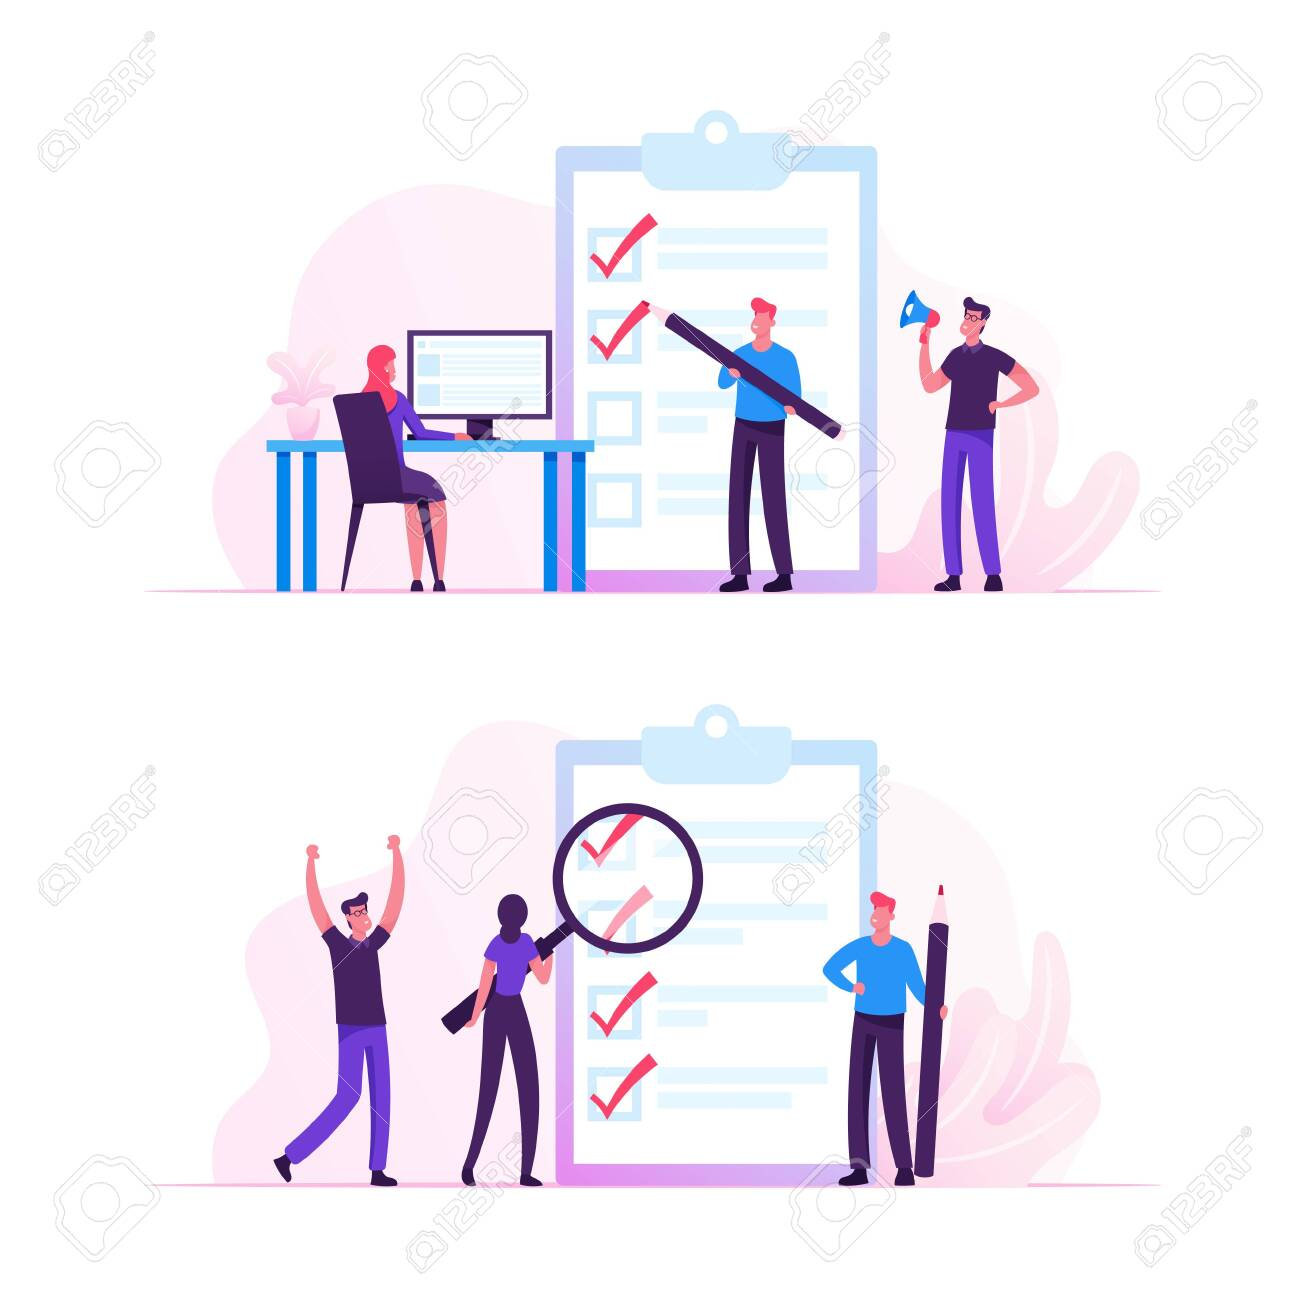 Business People Stand at Huge Clipboard with Check List Filling Marks by Pen Searching Solution and Thinking New Idea. Scheduling, Inspiration Creative Process Concept Cartoon Flat Vector Illustration - 133228273